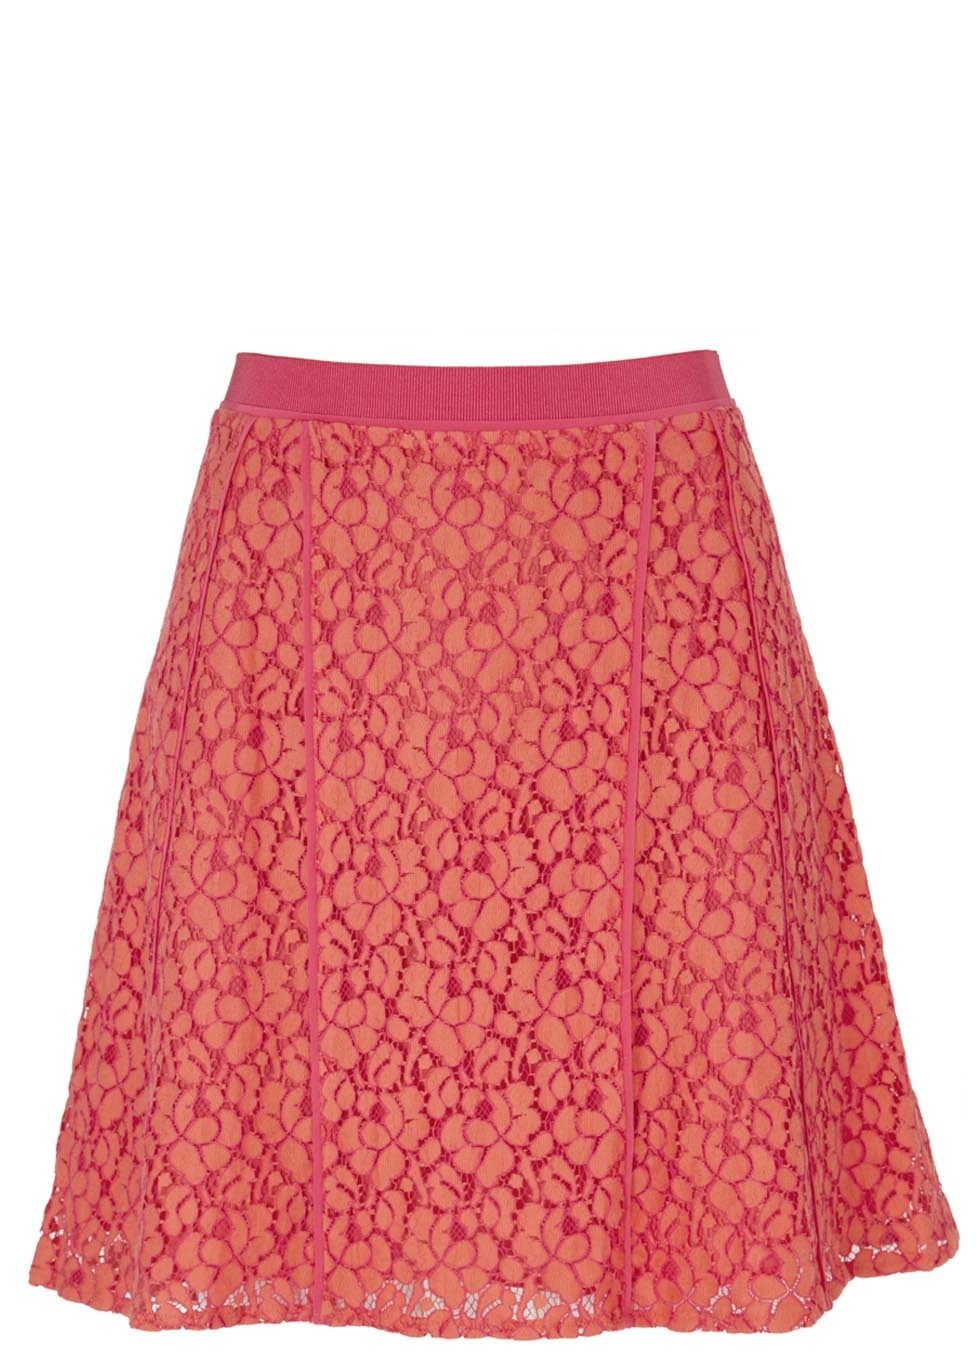 Luna Orange And Pink Lace Skirt - length: mid thigh; fit: loose/voluminous; waist detail: elasticated waist; waist: high rise; predominant colour: bright orange; occasions: casual, creative work; style: a-line; fibres: cotton - mix; hip detail: subtle/flattering hip detail; texture group: lace; pattern type: fabric; pattern: patterned/print; embellishment: lace; season: s/s 2014; wardrobe: highlight; embellishment location: all over